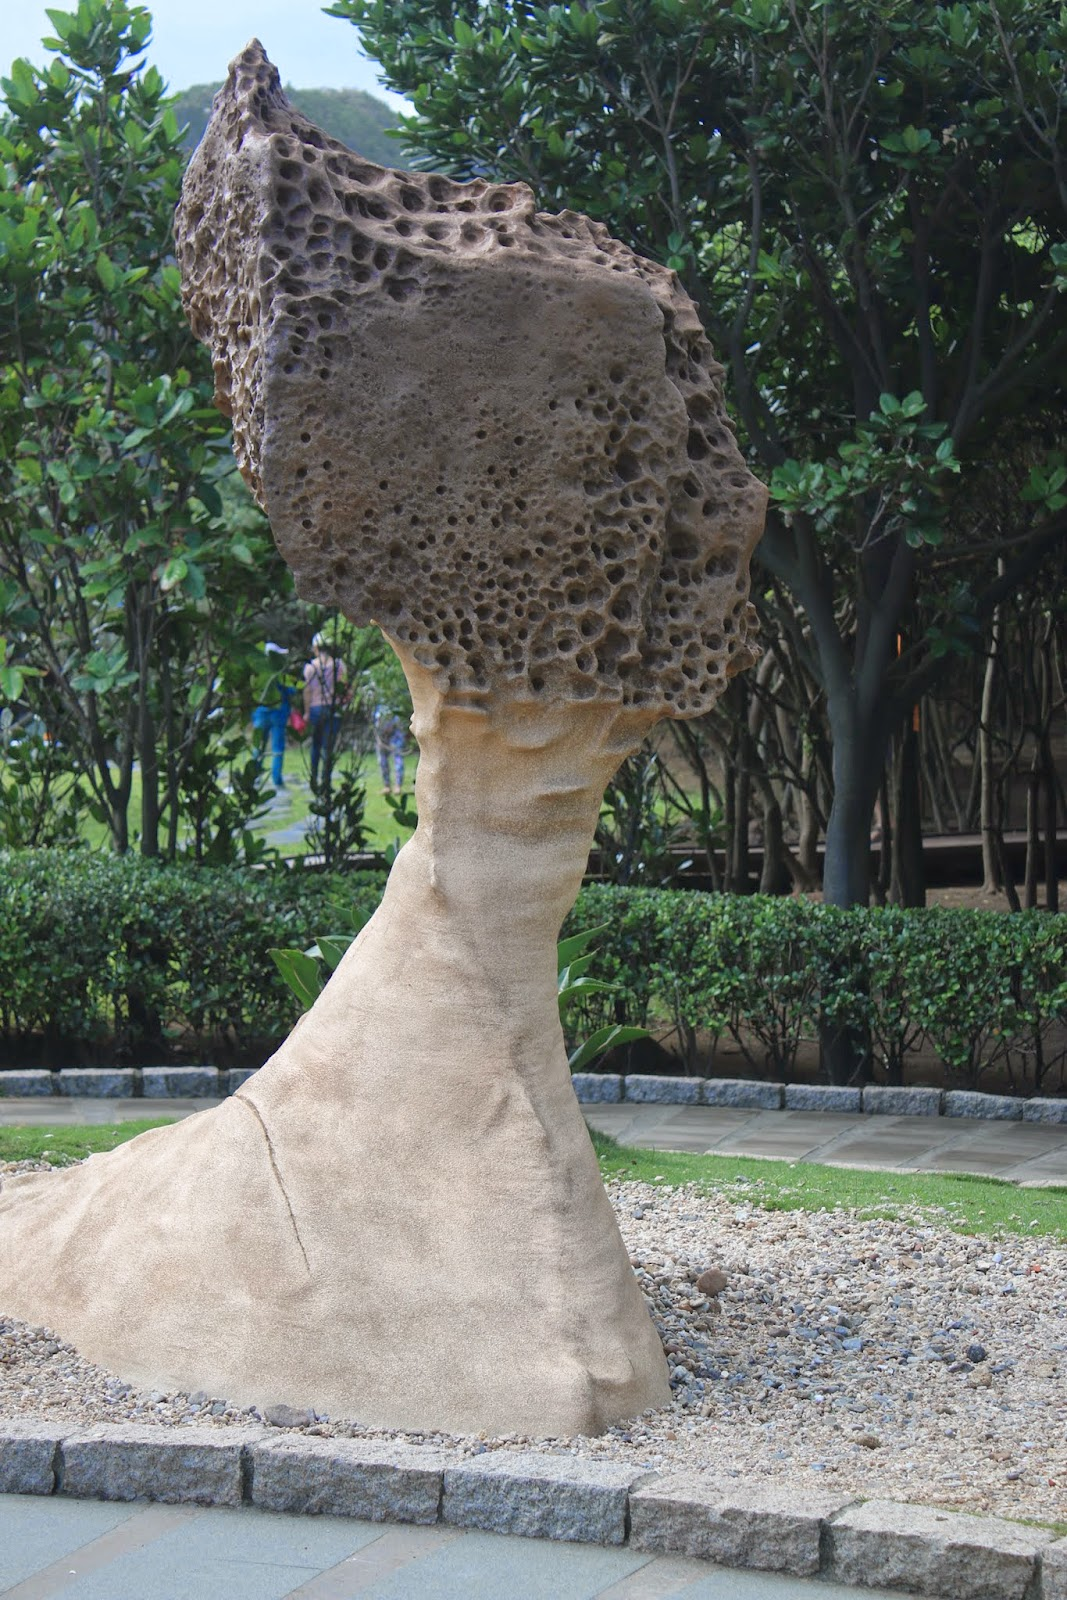 The artifact of Queen's Head at Yehliu Geopark at Wanli of New Taipei City of Taiwan